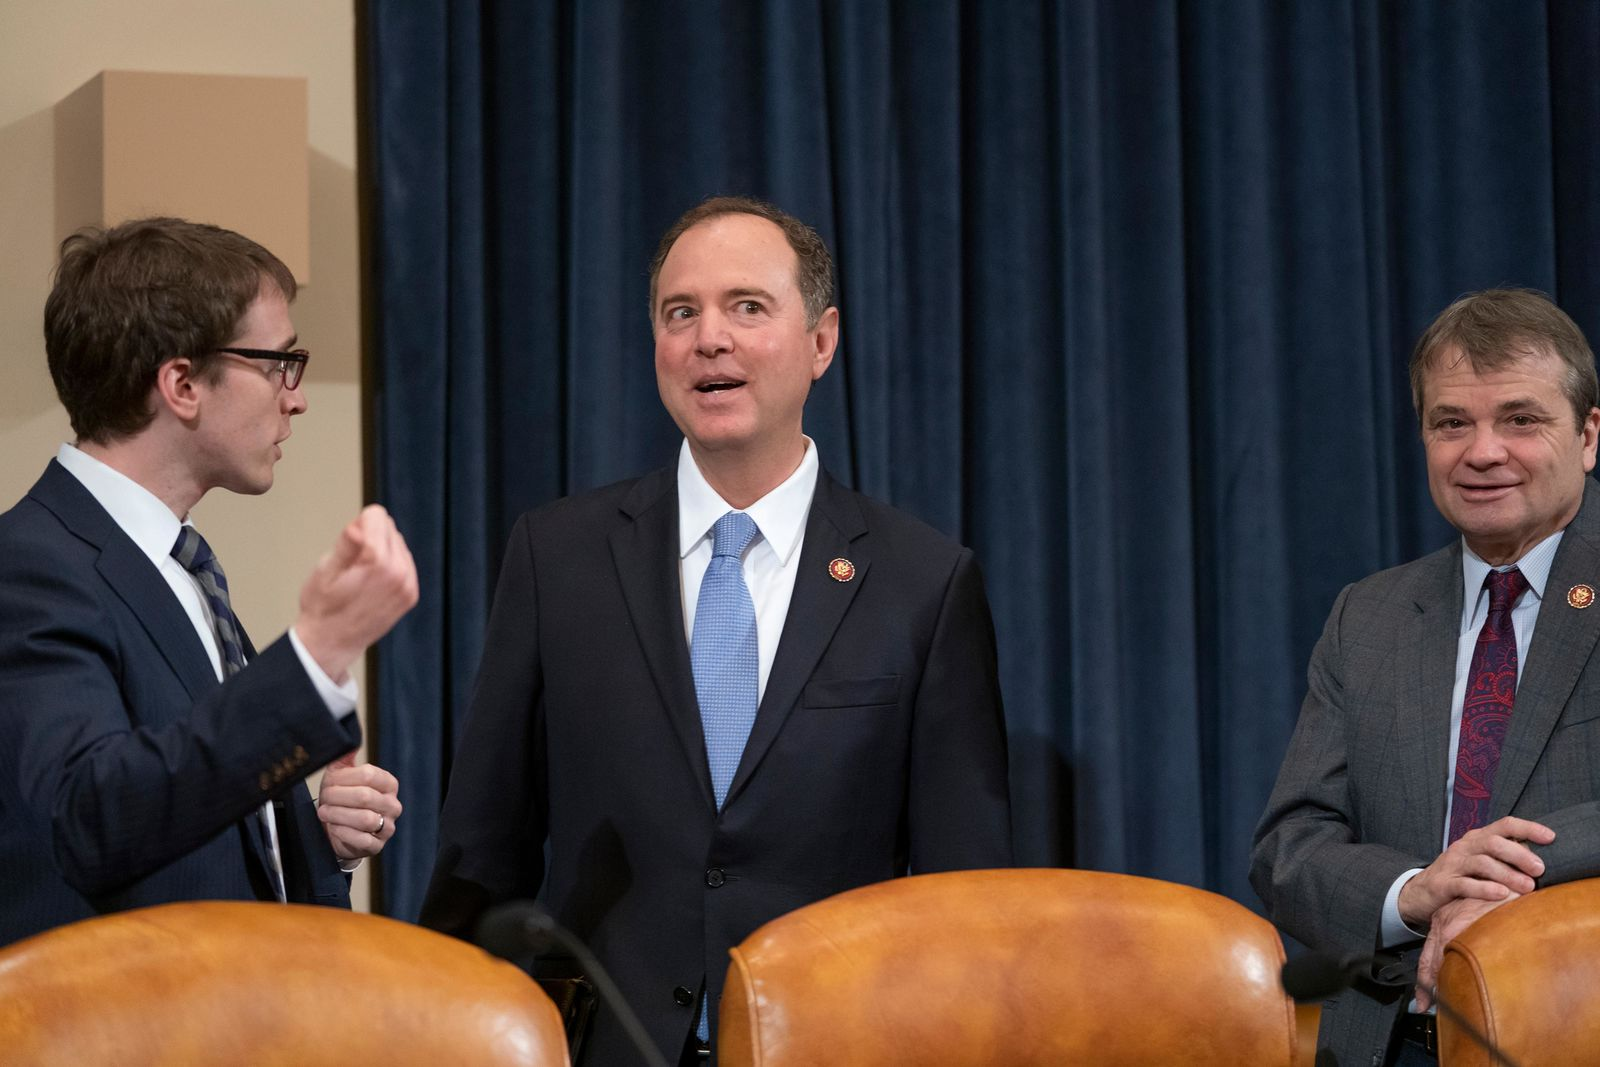 House Intelligence Committee Chairman Adam Schiff, D-Calif., center, joined at right by Rep. Mike Quigley, D-Ill., opens a hearing on politically motivated fake videos and manipulated media, on Capitol Hill in Washington, Thursday, June 13, 2019.  (AP Photo/J. Scott Applewhite)